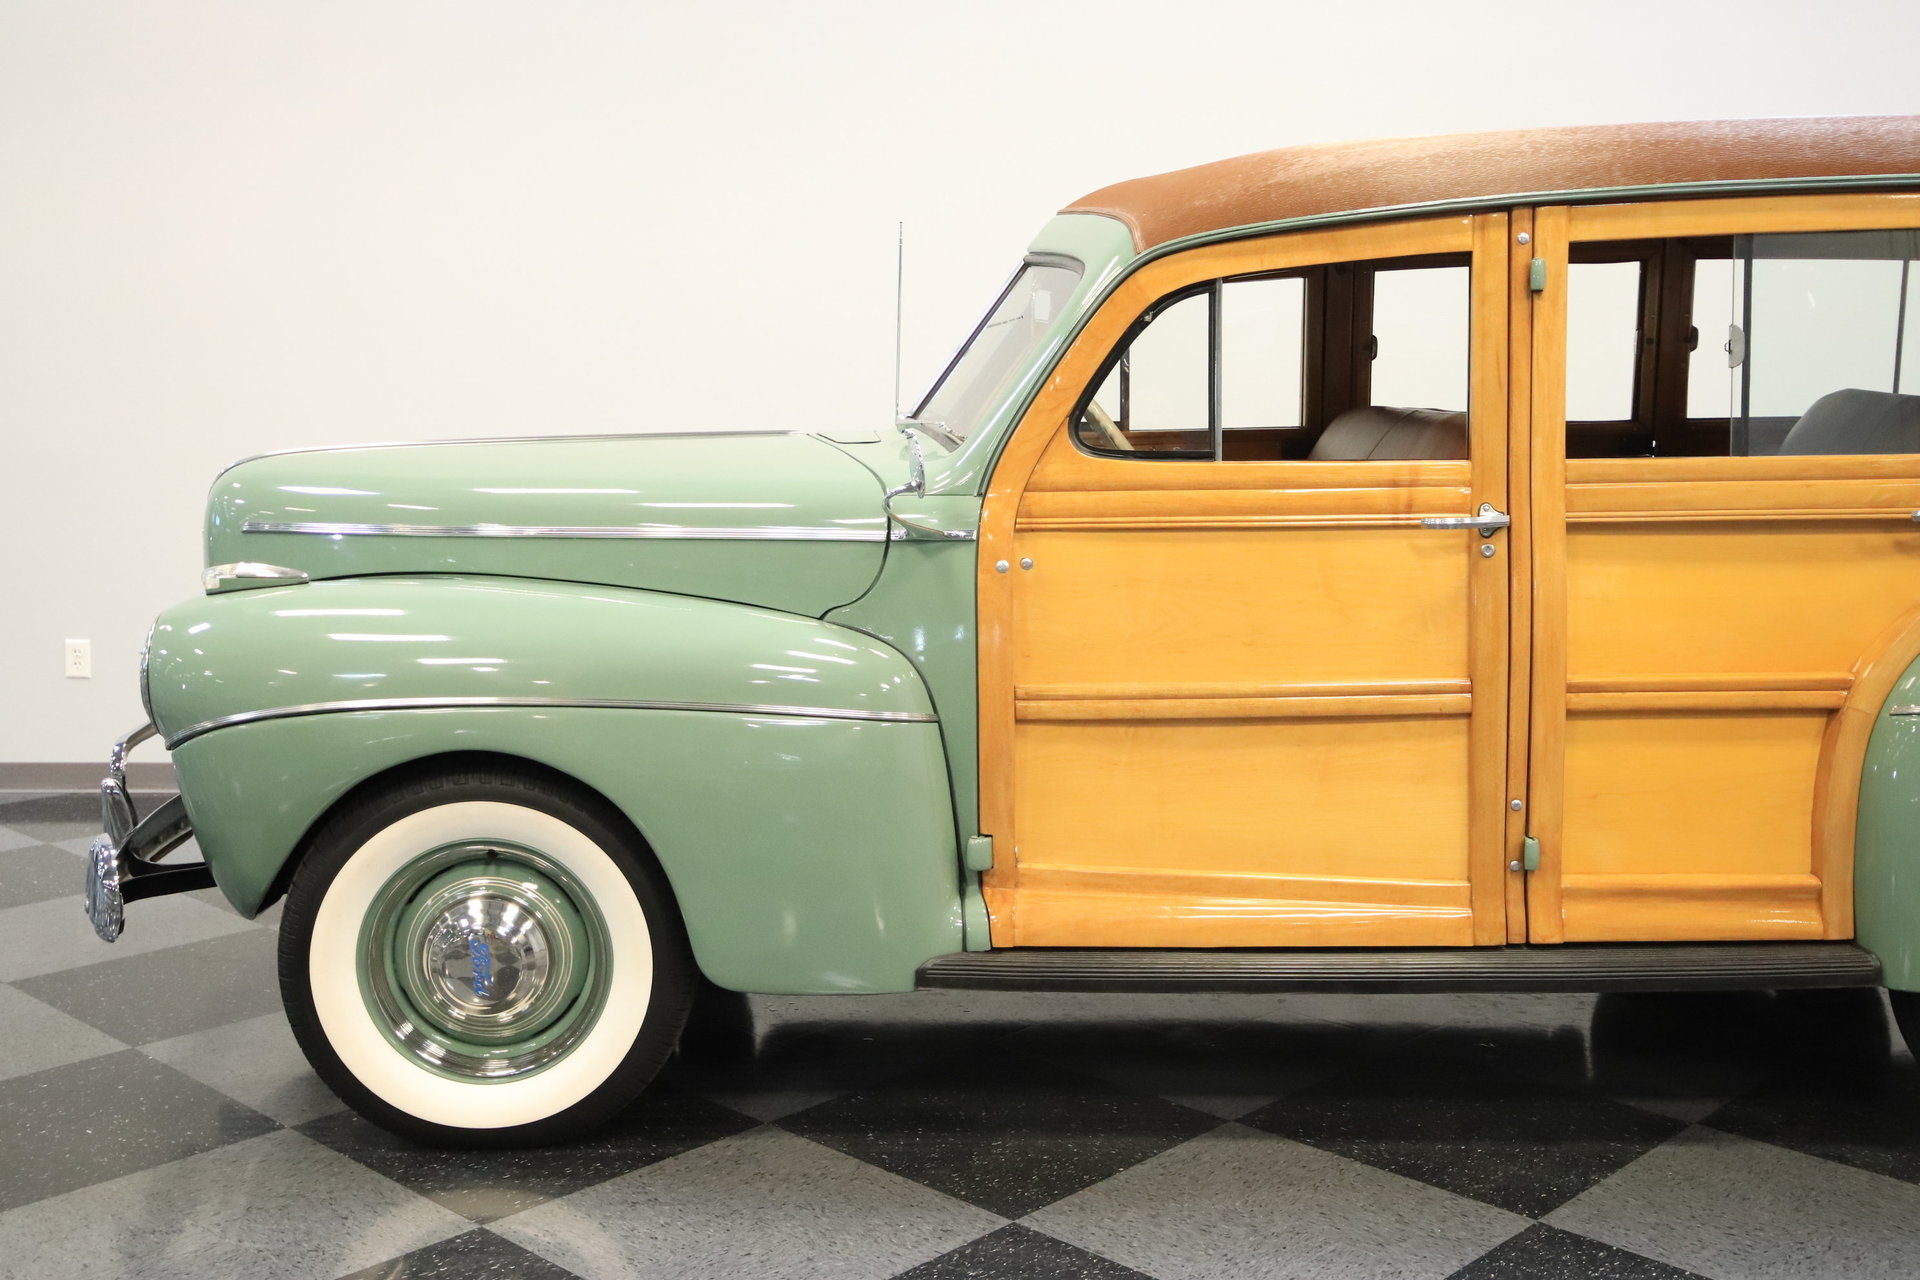 1941 Ford Super Deluxe Streetside Classics The Nations Trusted Chevy Station Wagon Show More Photos